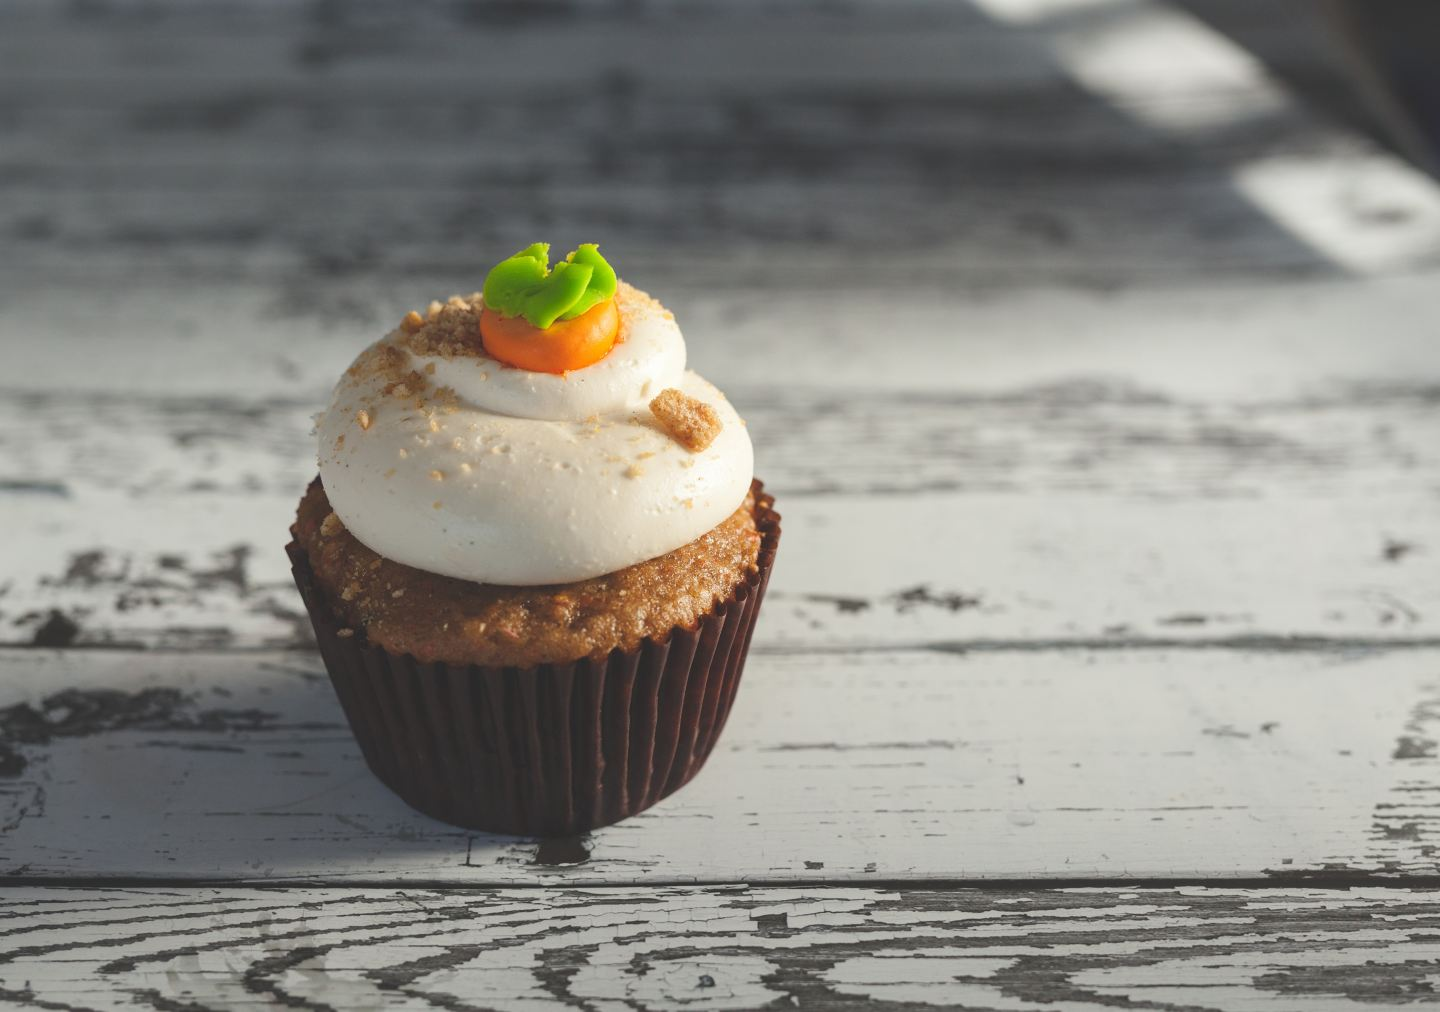 What makes a good carrot cake good?